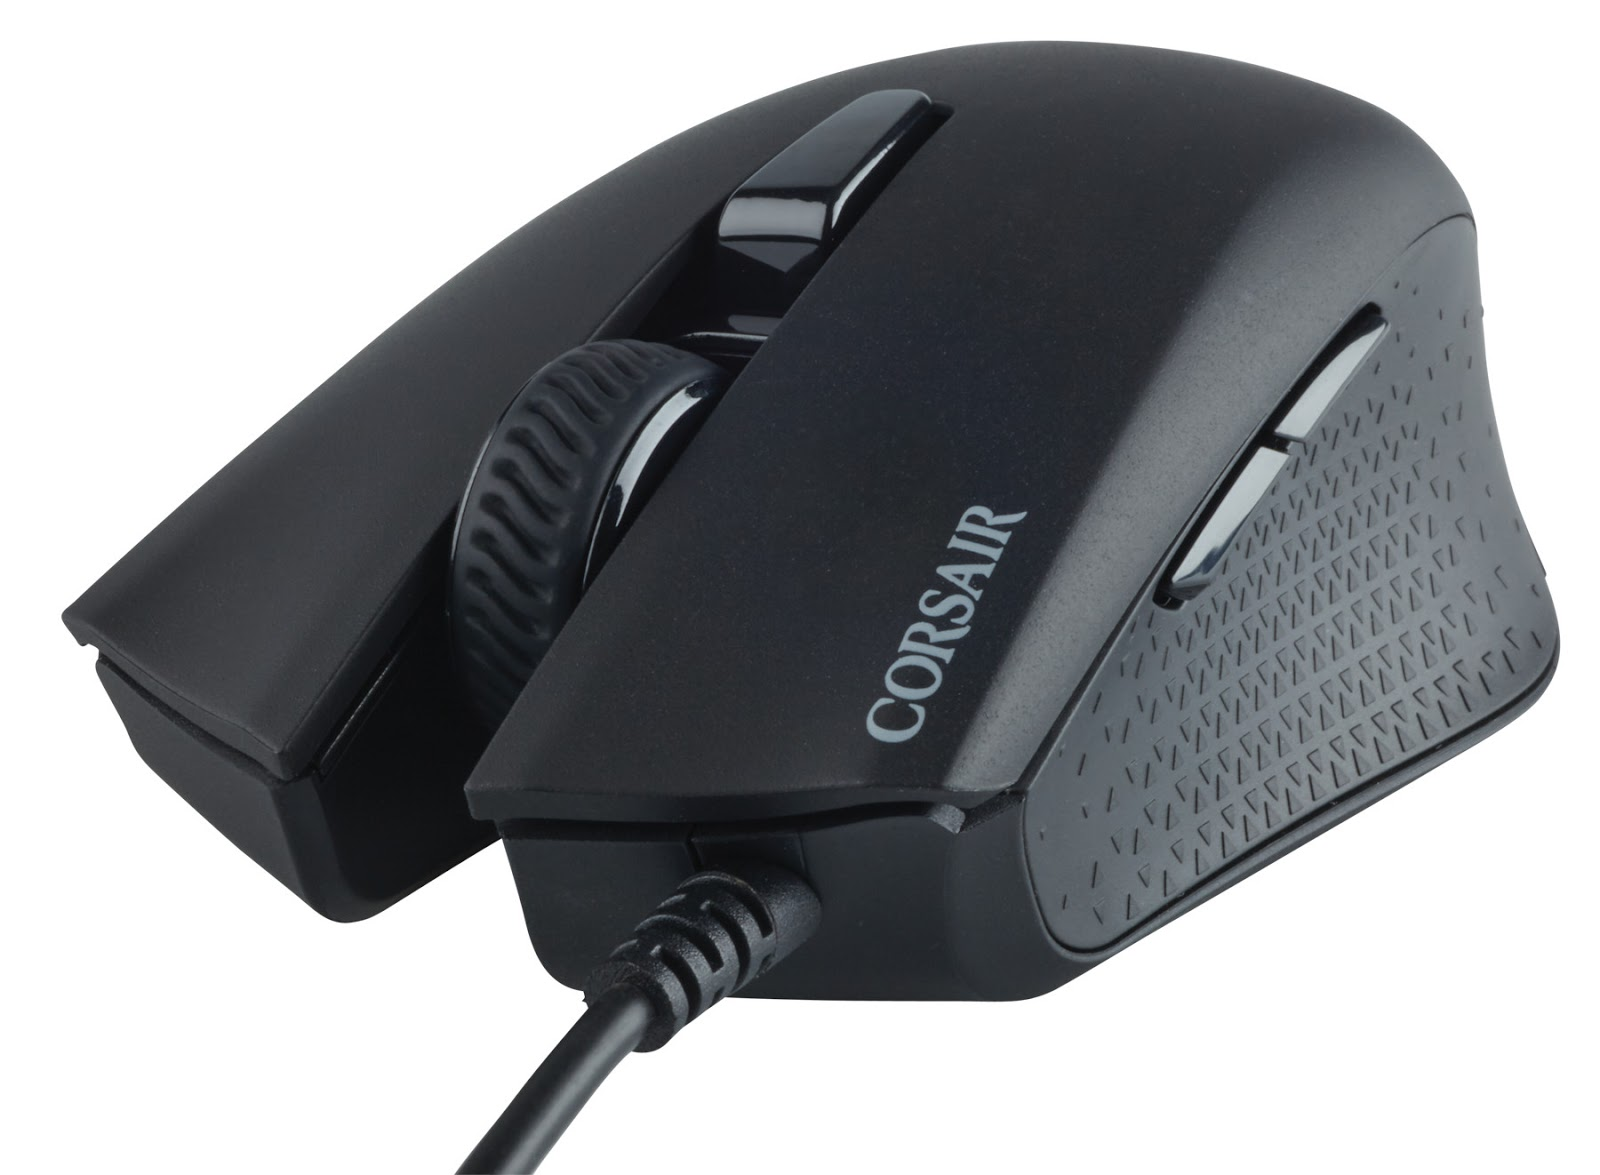 blank]'s Universe: CORSAIR Launches New HARPOON RGB Gaming